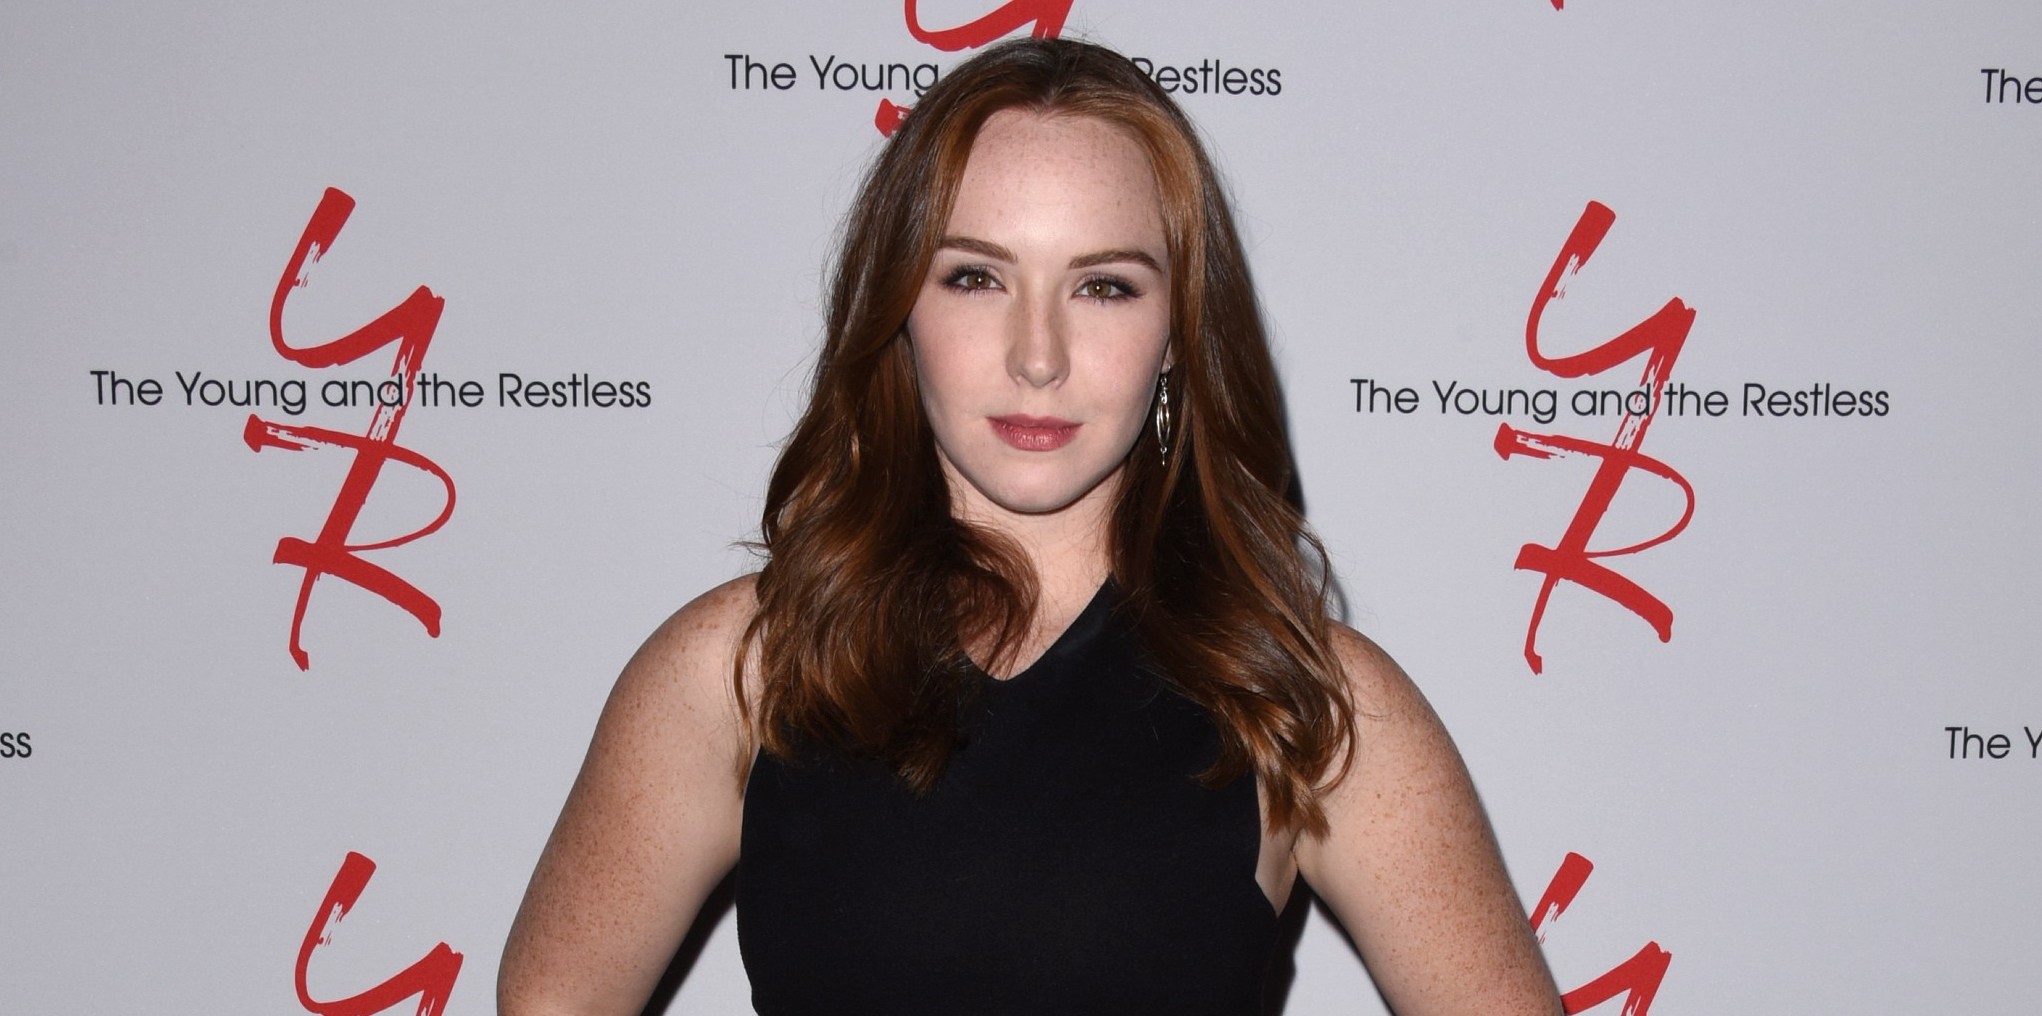 Camryn Grimes THE YOUNG AND THE RESTLESS Fan Event The Sheraton Universal Universal City, CA 8/15/15  © Jill Johnson/jpistudios.com 310-657-9661